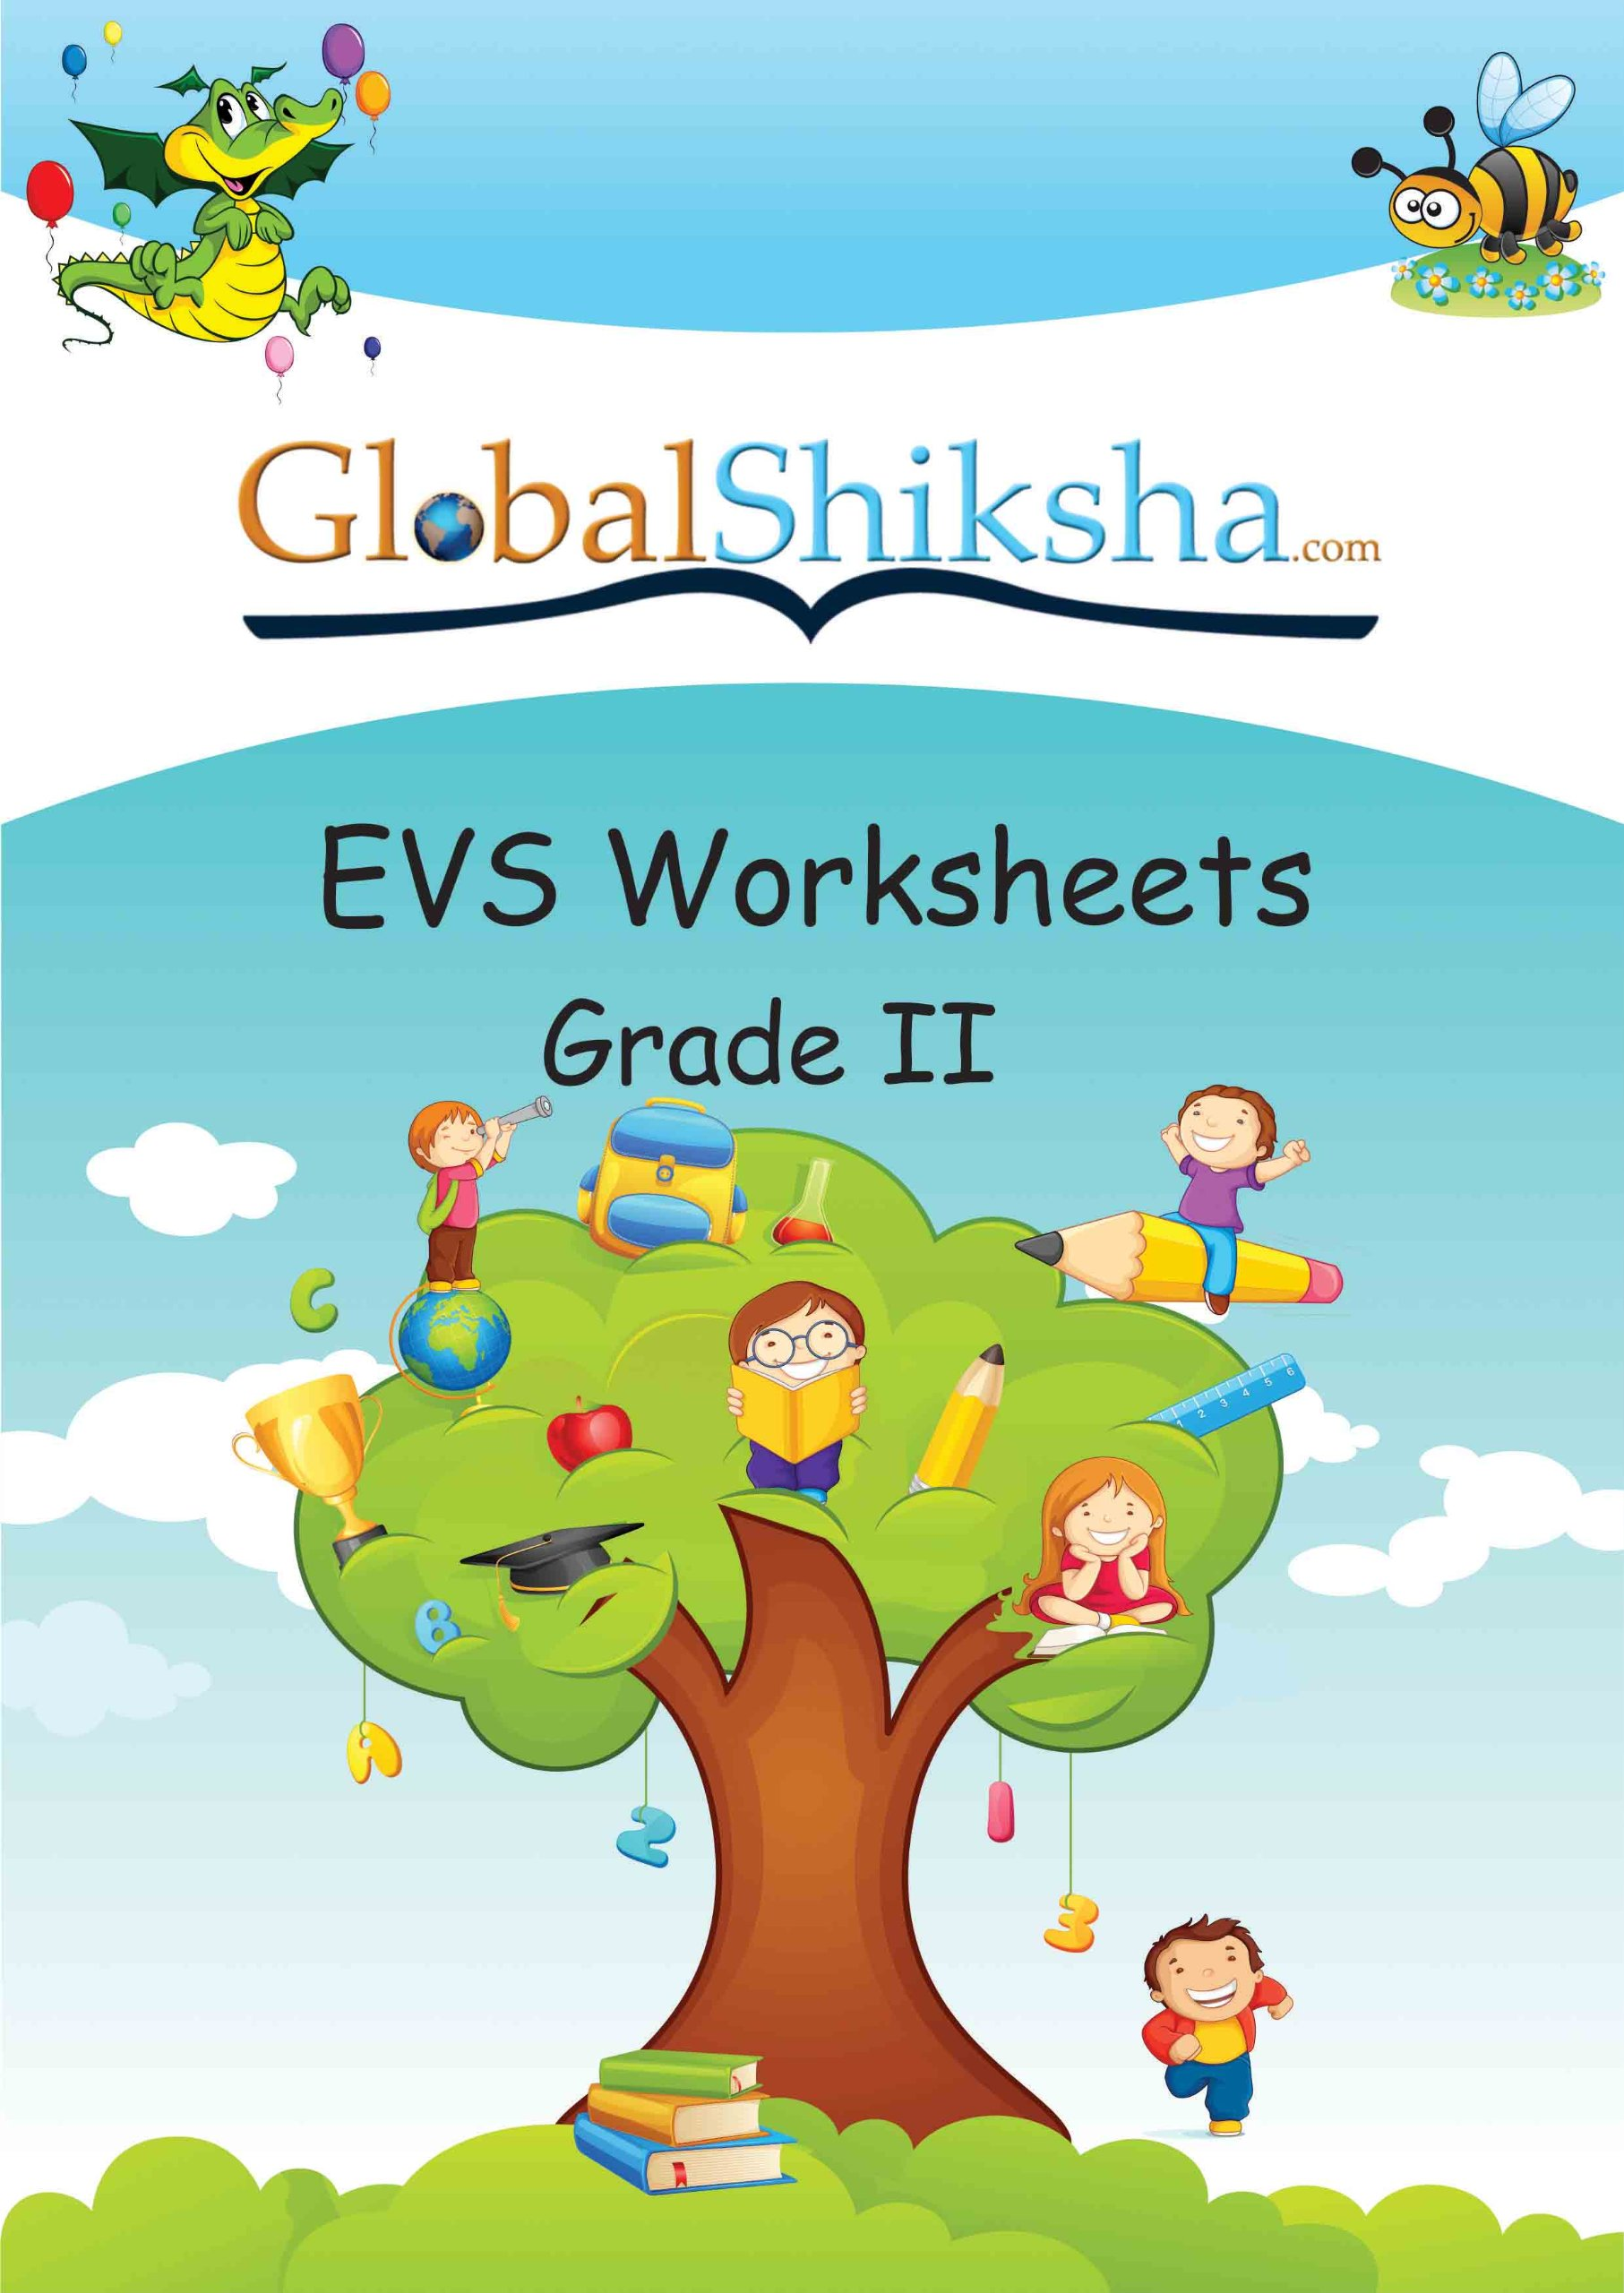 Cbse Class 2 Worksheets Image collections - worksheet for kids maths ...